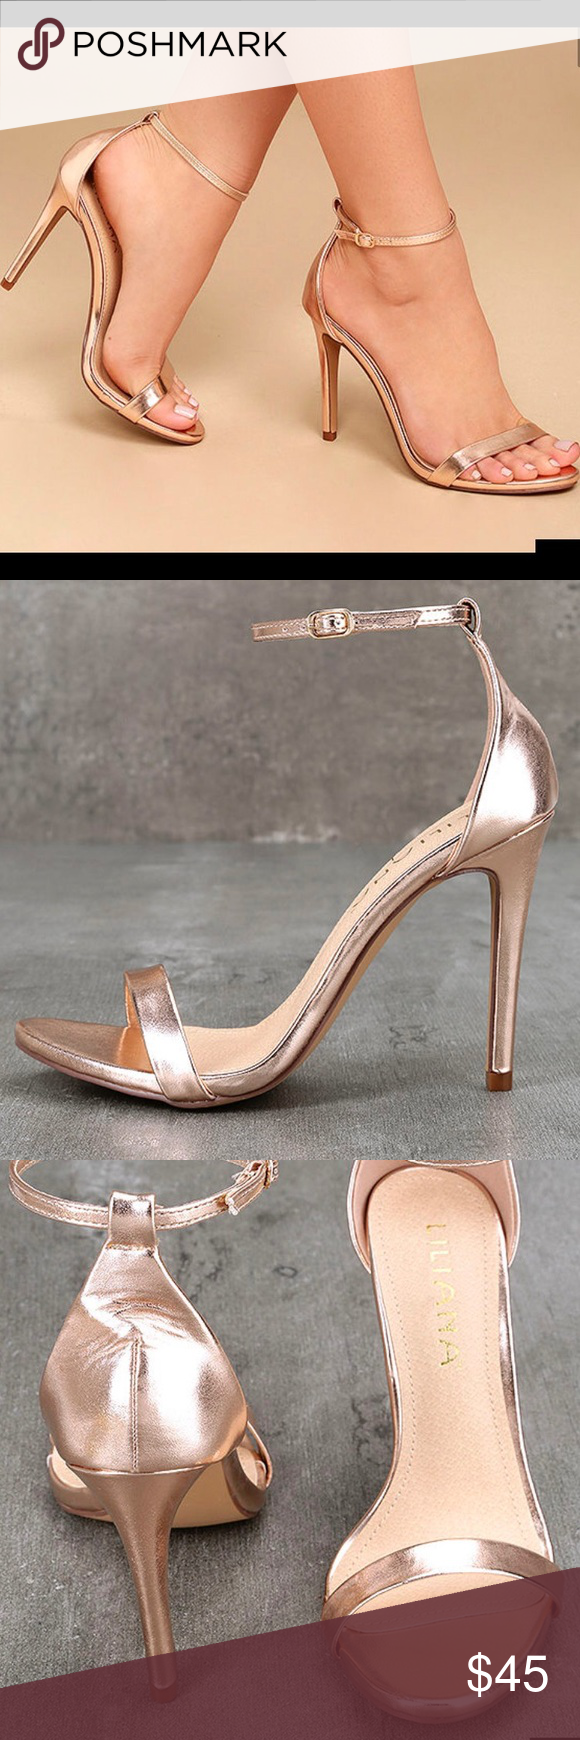 c681e0e6141 Rose Gold Strappy Heels Brand new in box. Unused. Rose Hold Strappy Heels.  Size 6. Description of Heels in picture. ❌🚫Trades Lulu s Shoes Heels